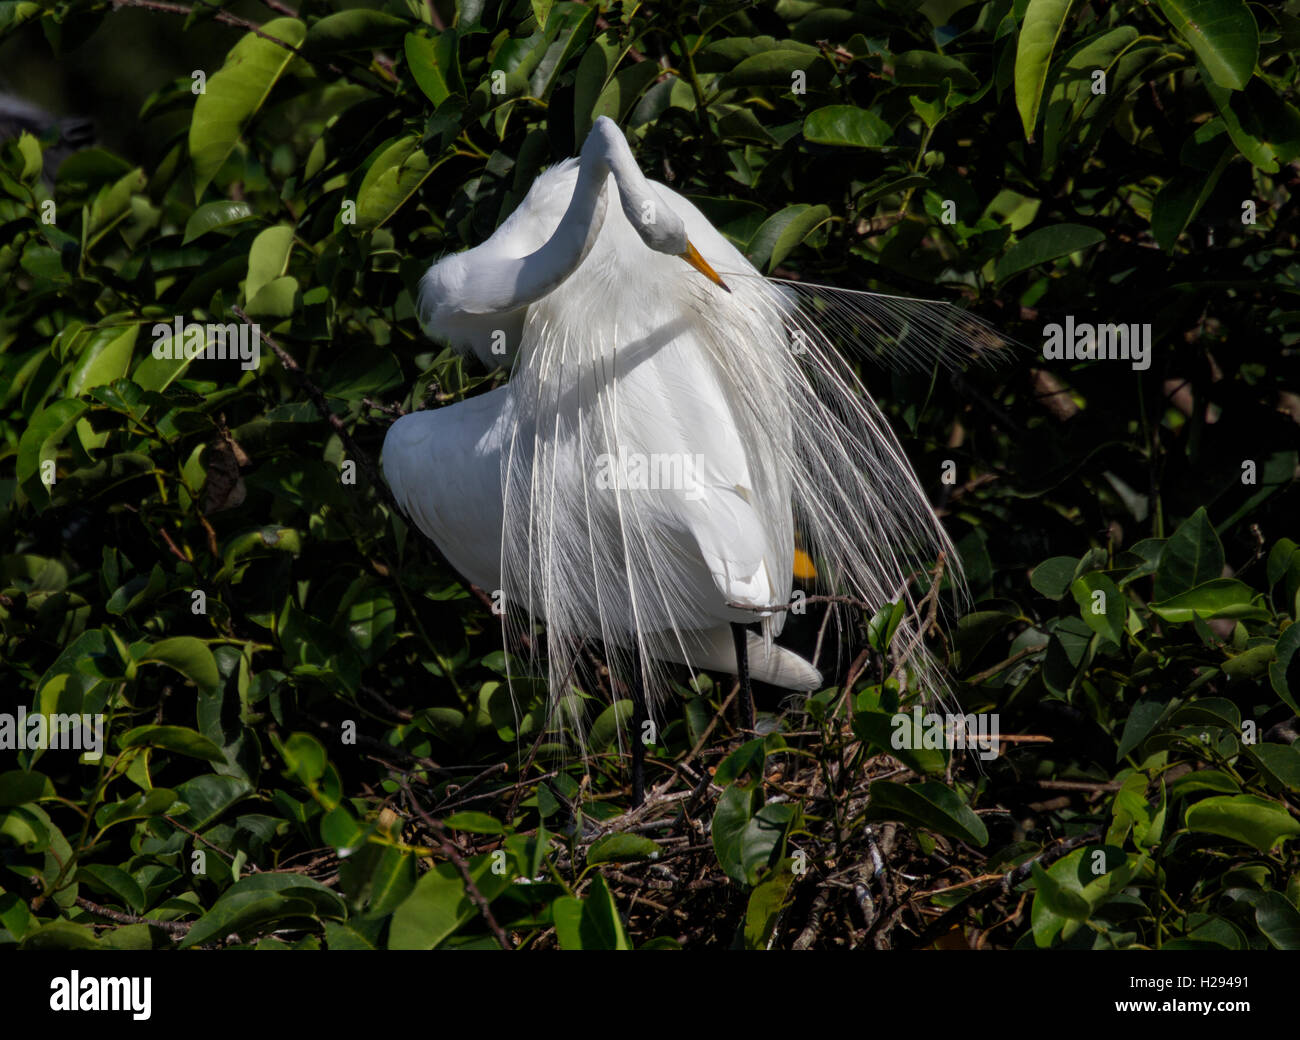 A White Egret assumes an artistic sinuous pose as it reaches back to clean its aigrettes with its long flexible - Stock Image